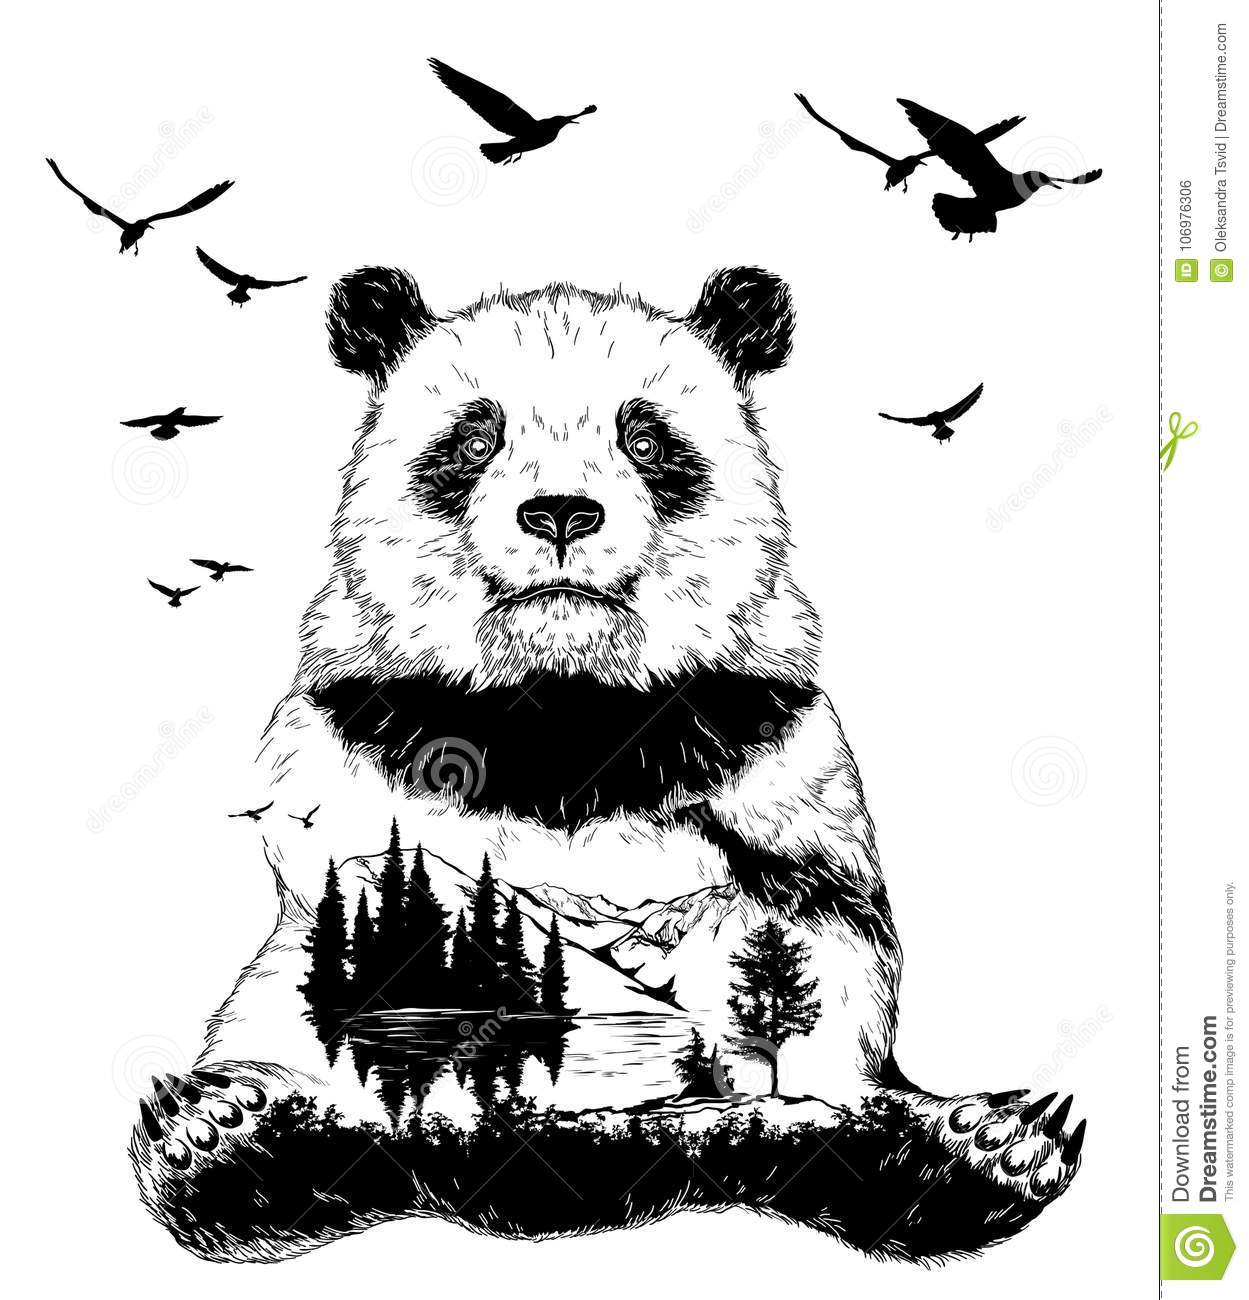 Double exposure, panda bear and forest landscape